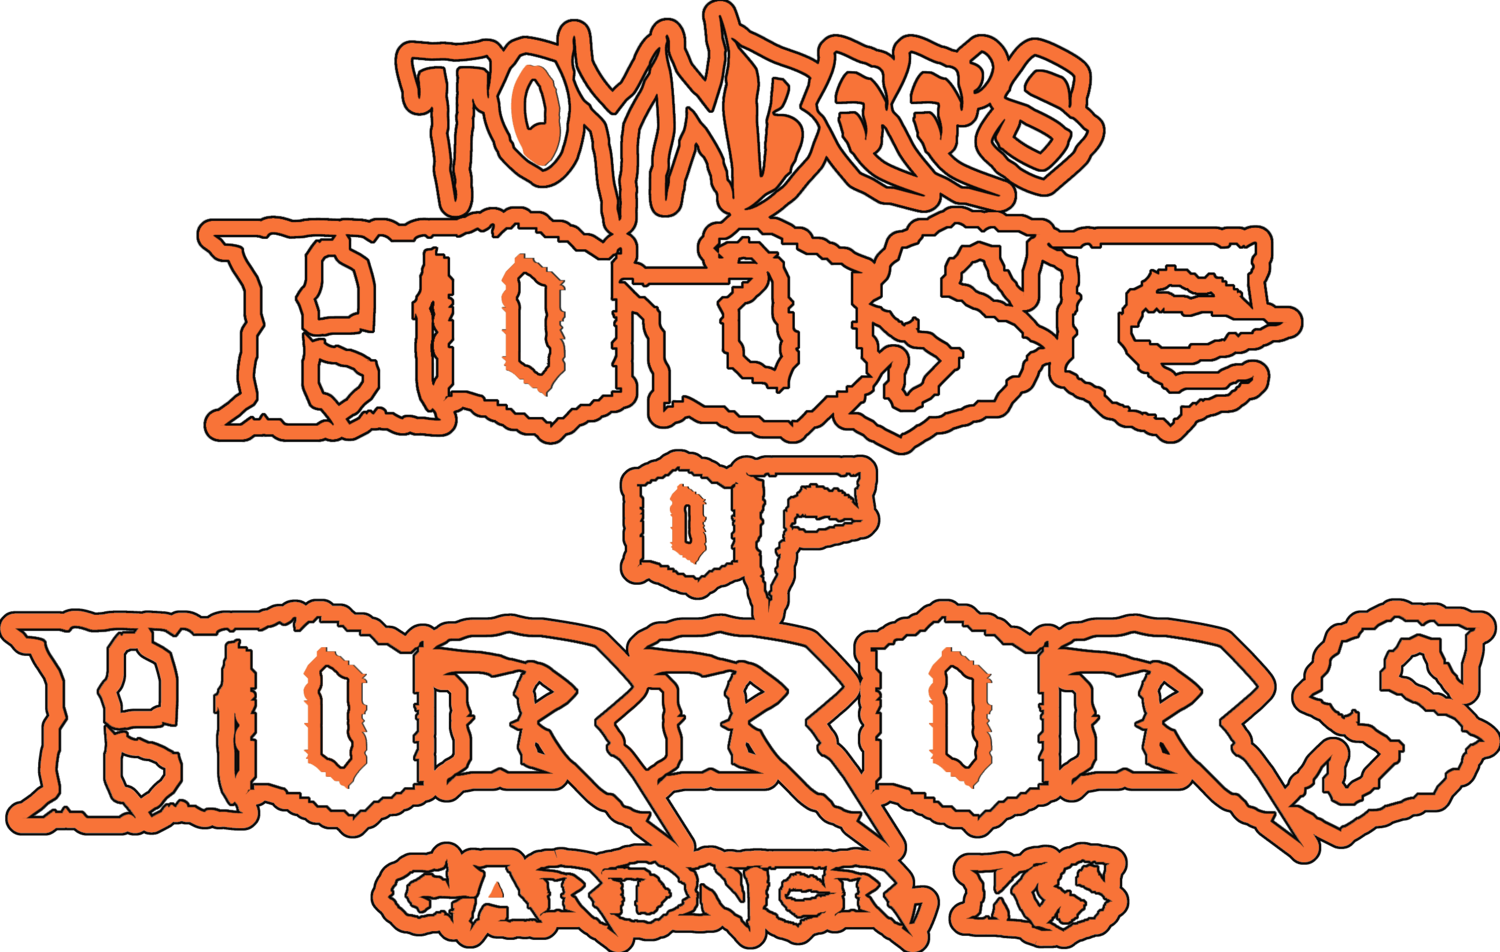 Toynbee's House of Horrors